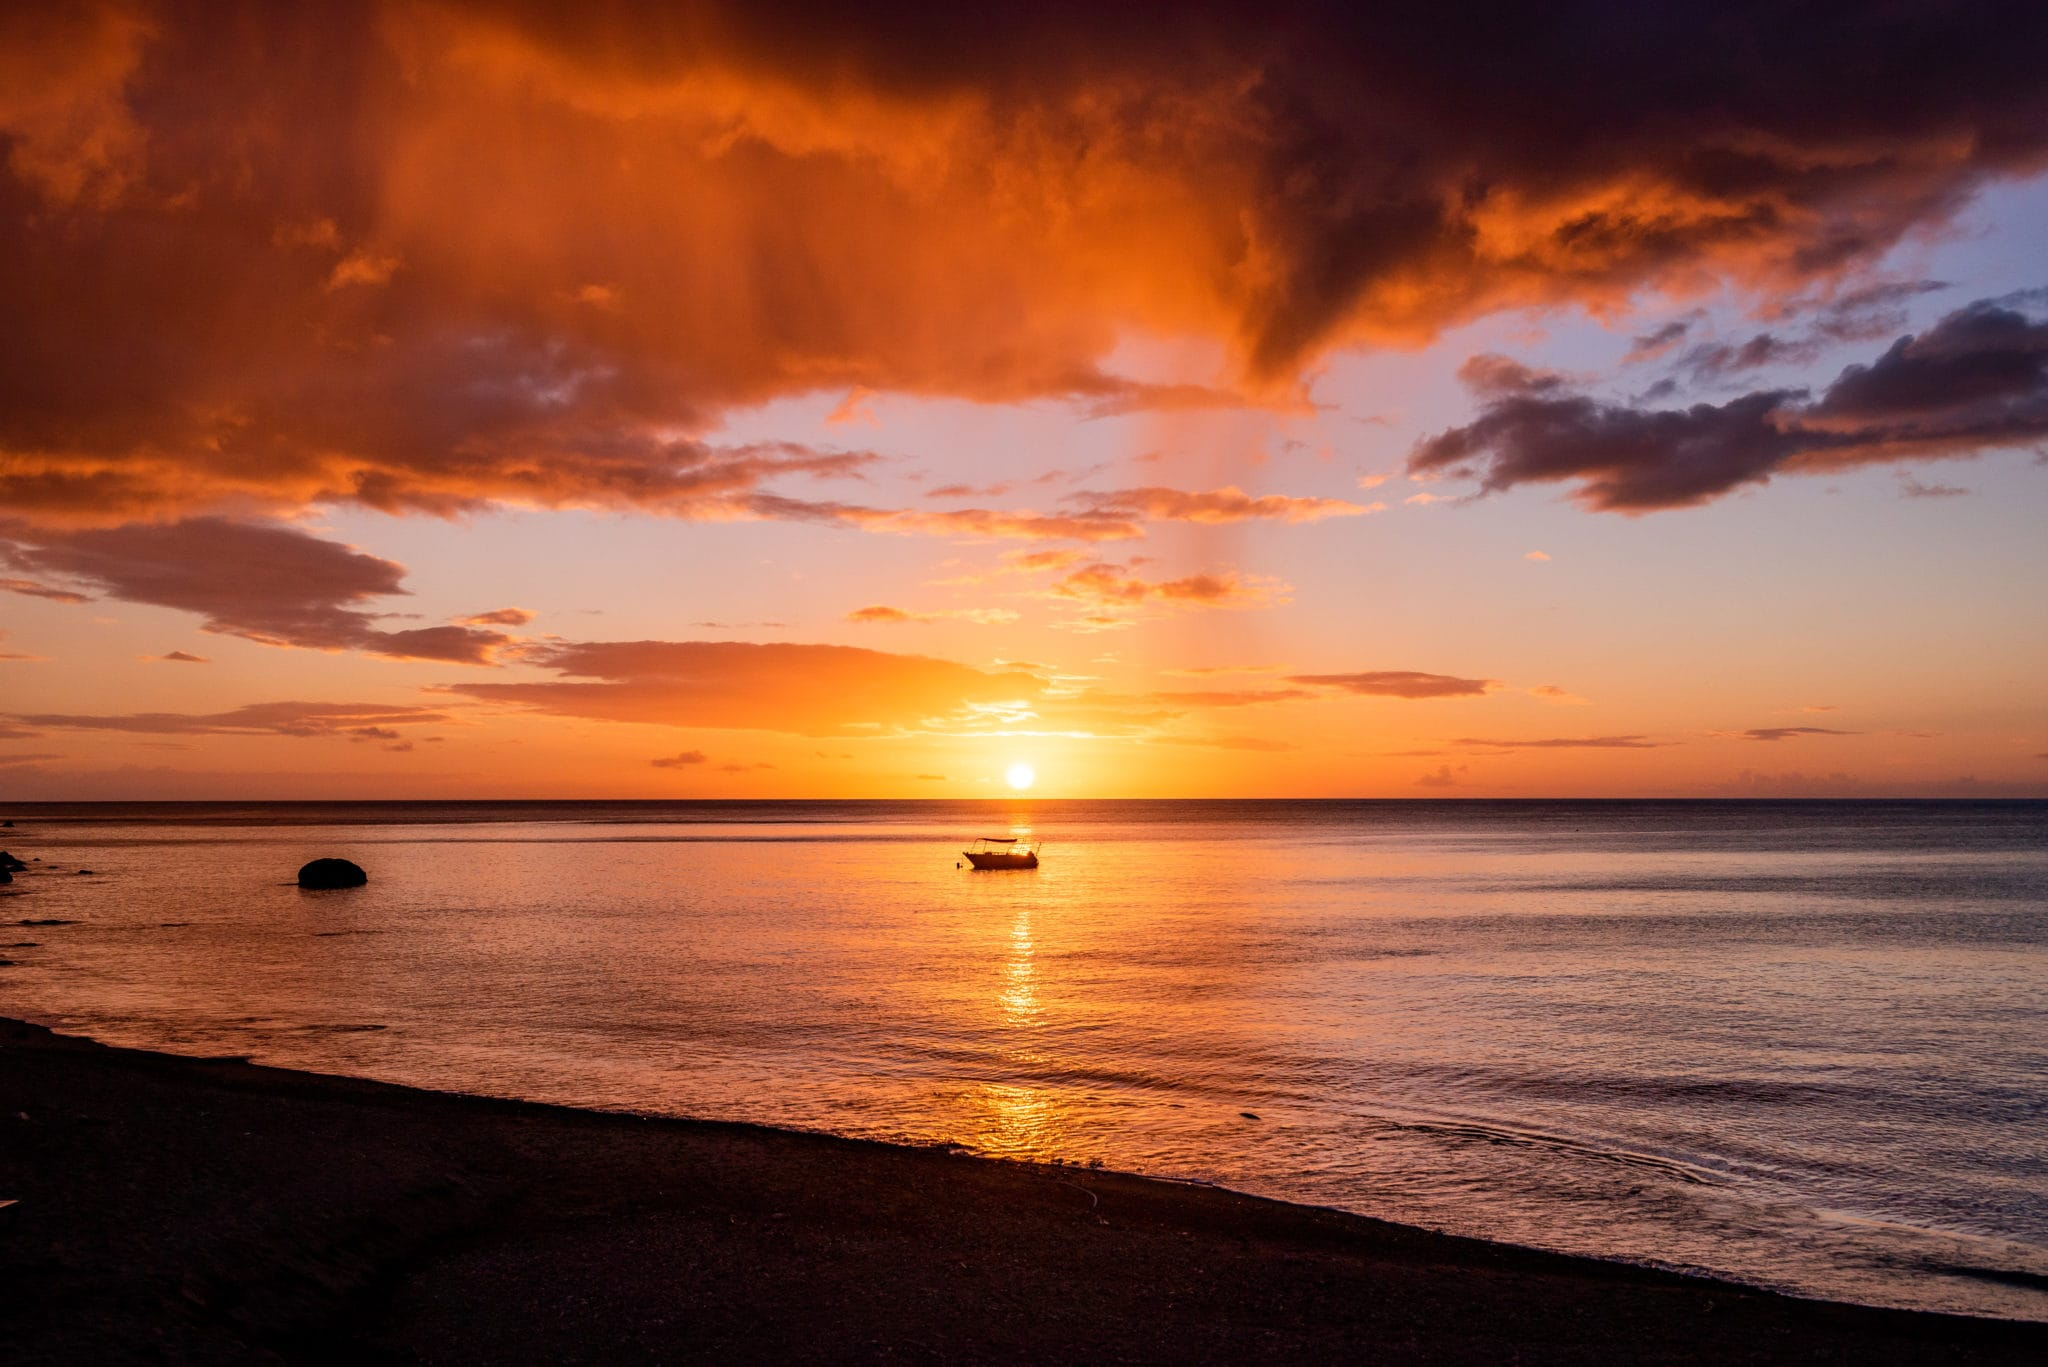 Sunset Bay Dominica Delivers Sunsets That Don't Disappoint